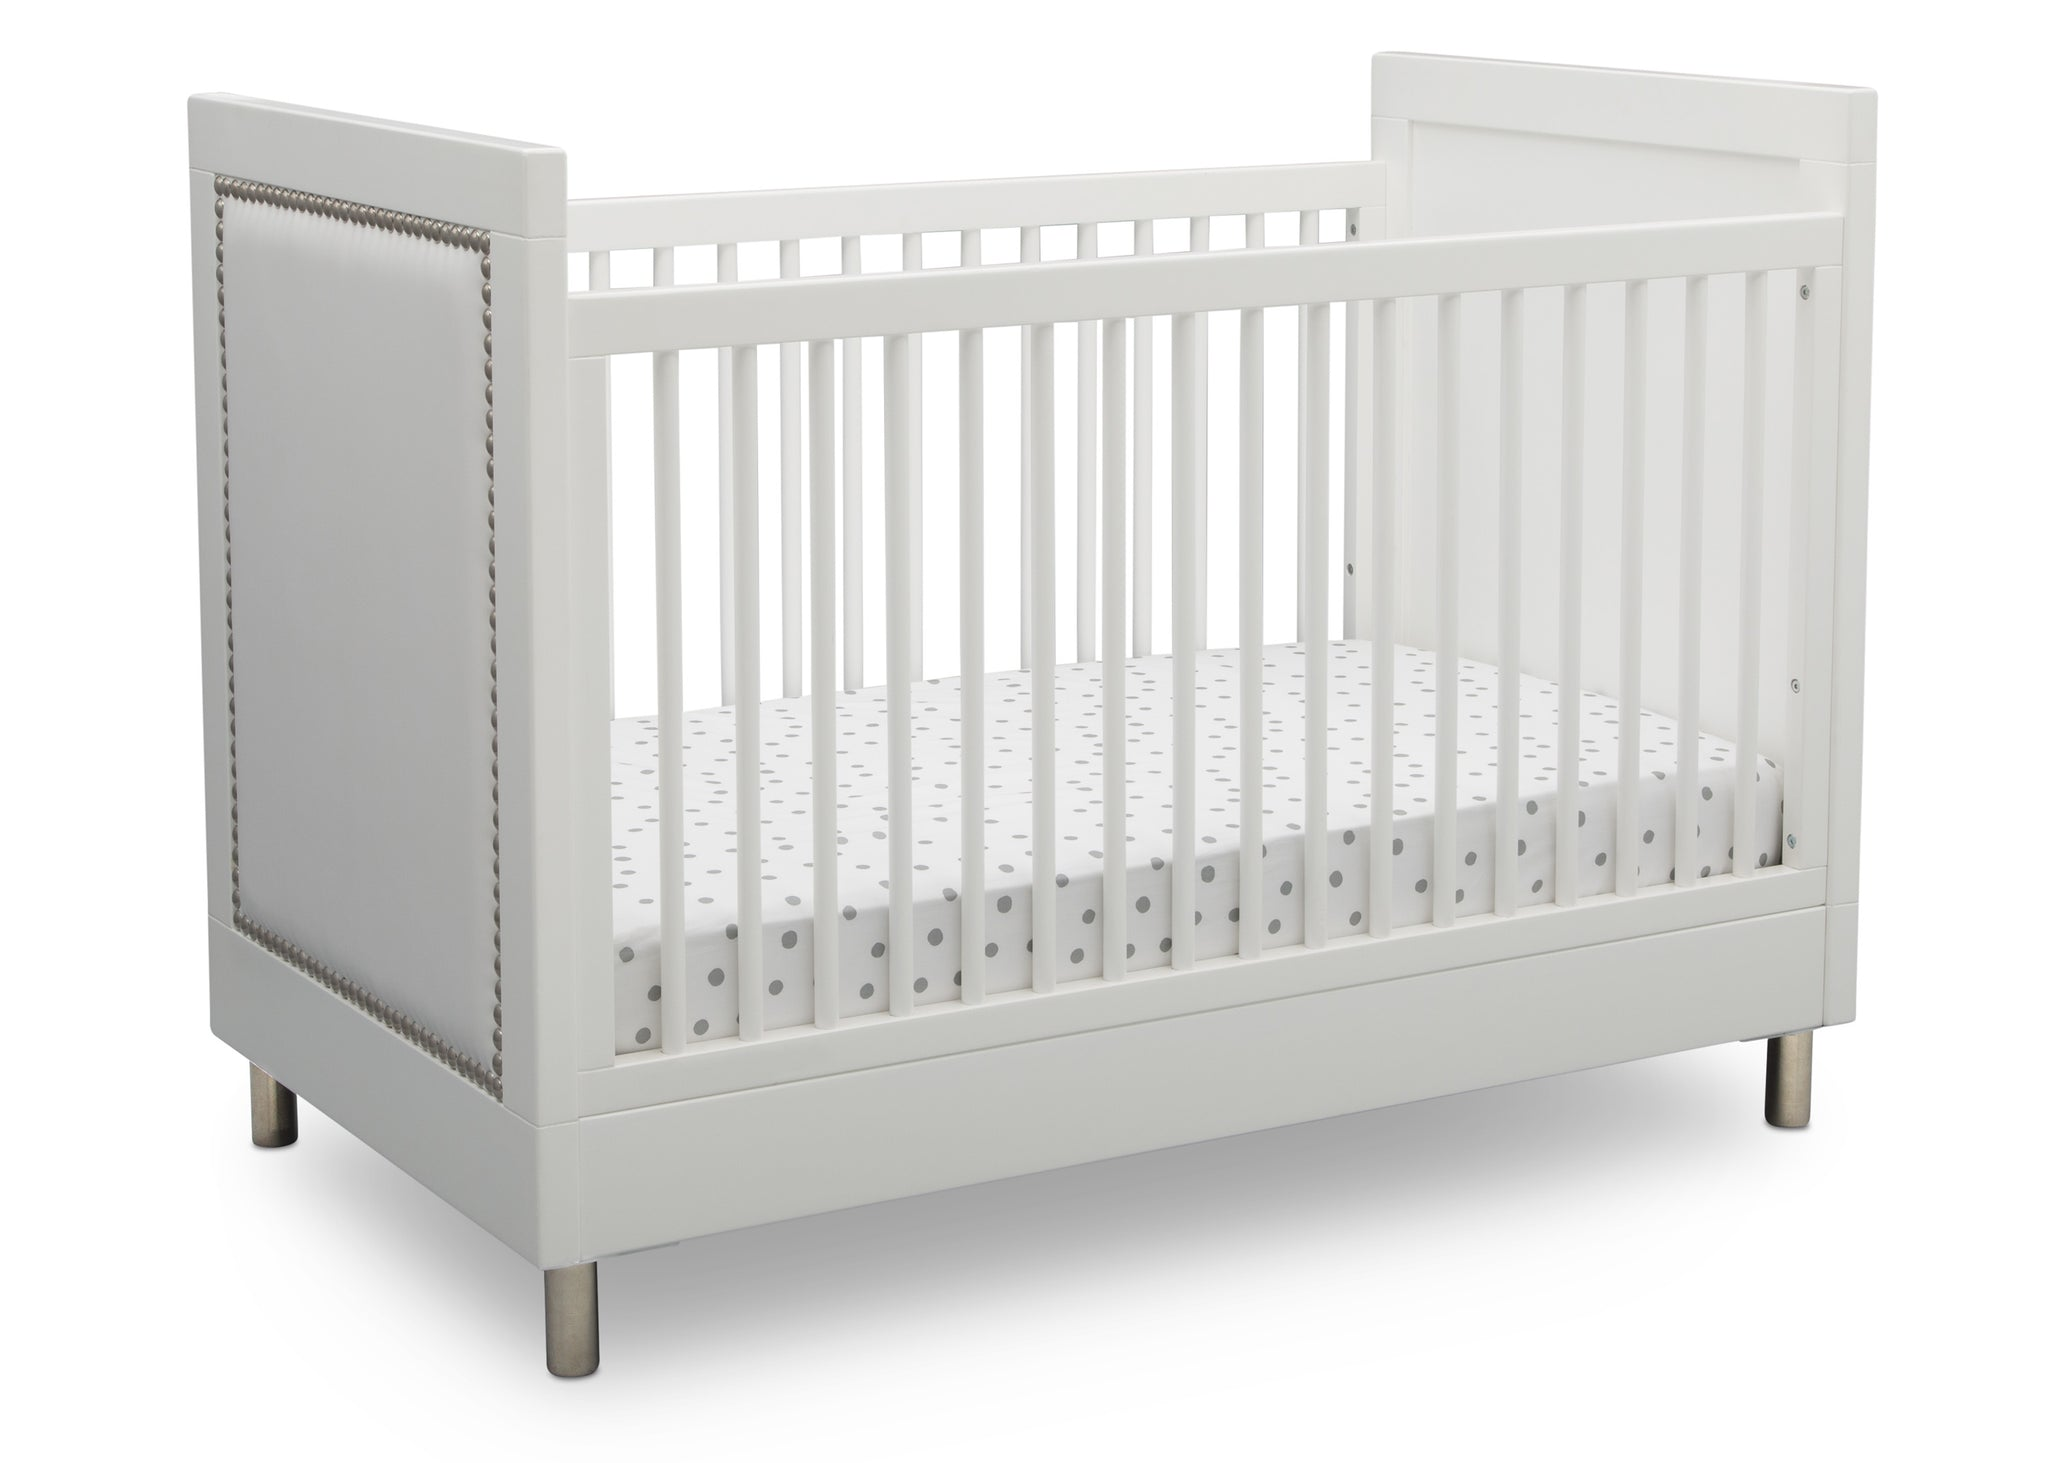 Simmons Kids Bianca White (1321) Avery 3-in-1 Convertible Crib, Right Crib Silo View